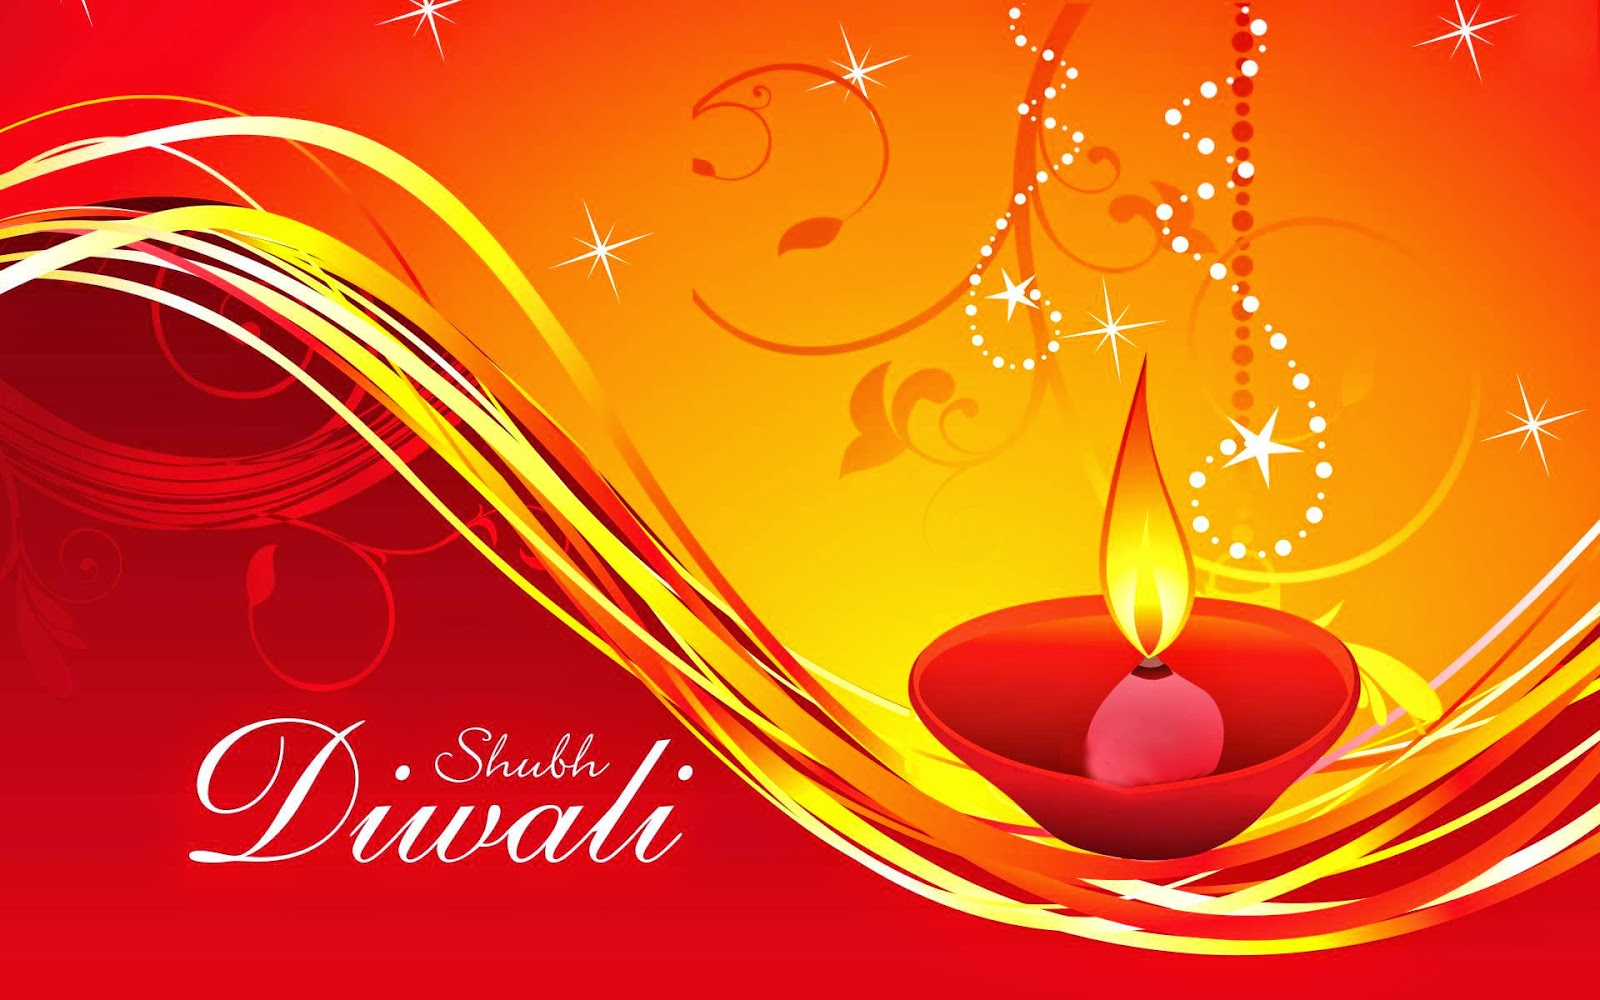 Best Happy Diwali 2014 Wallpapers and Images